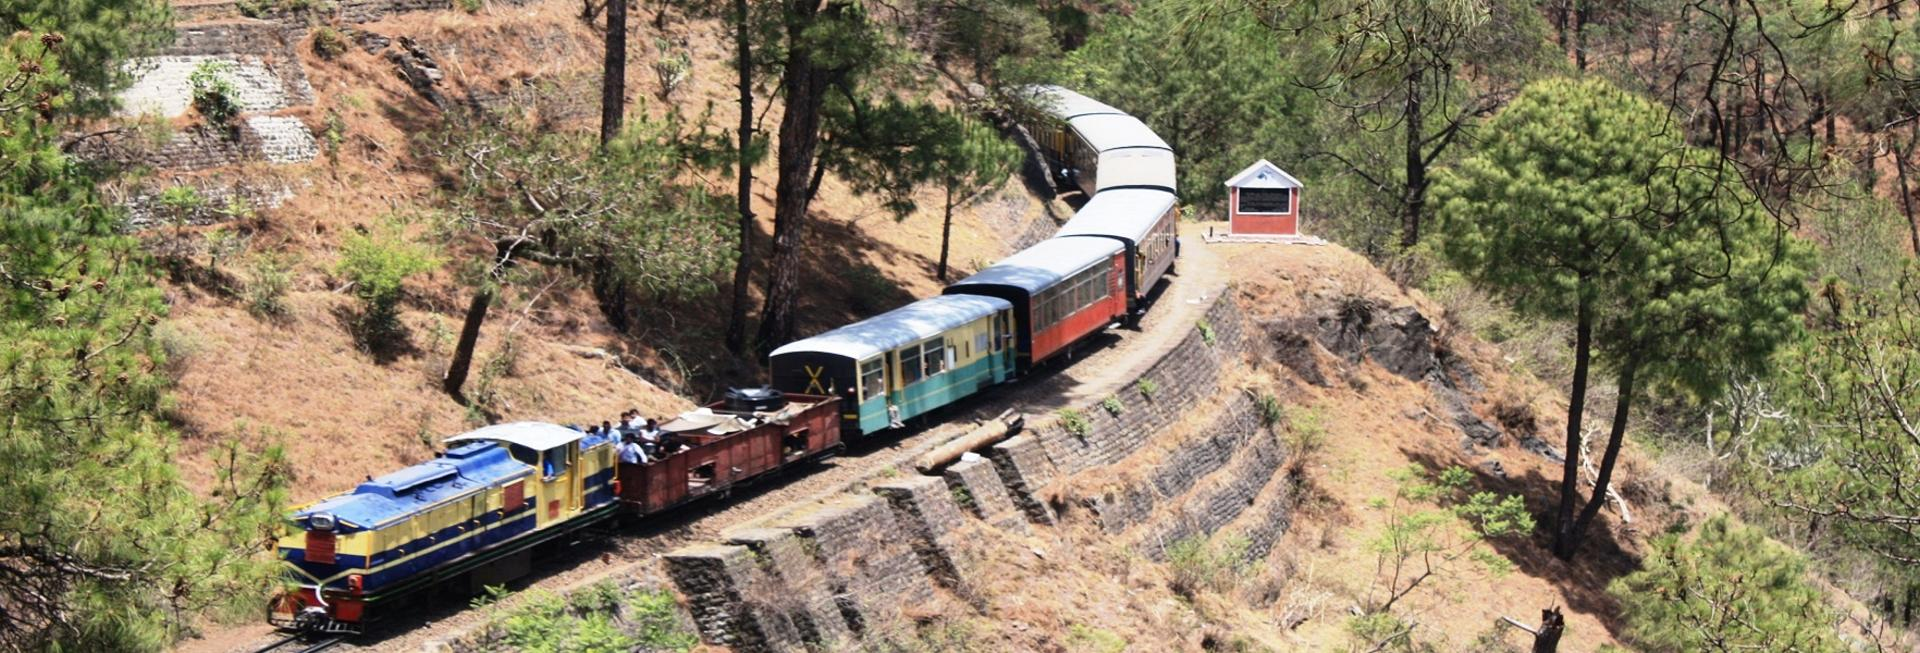 Ride the Shimla toy train, Shimla